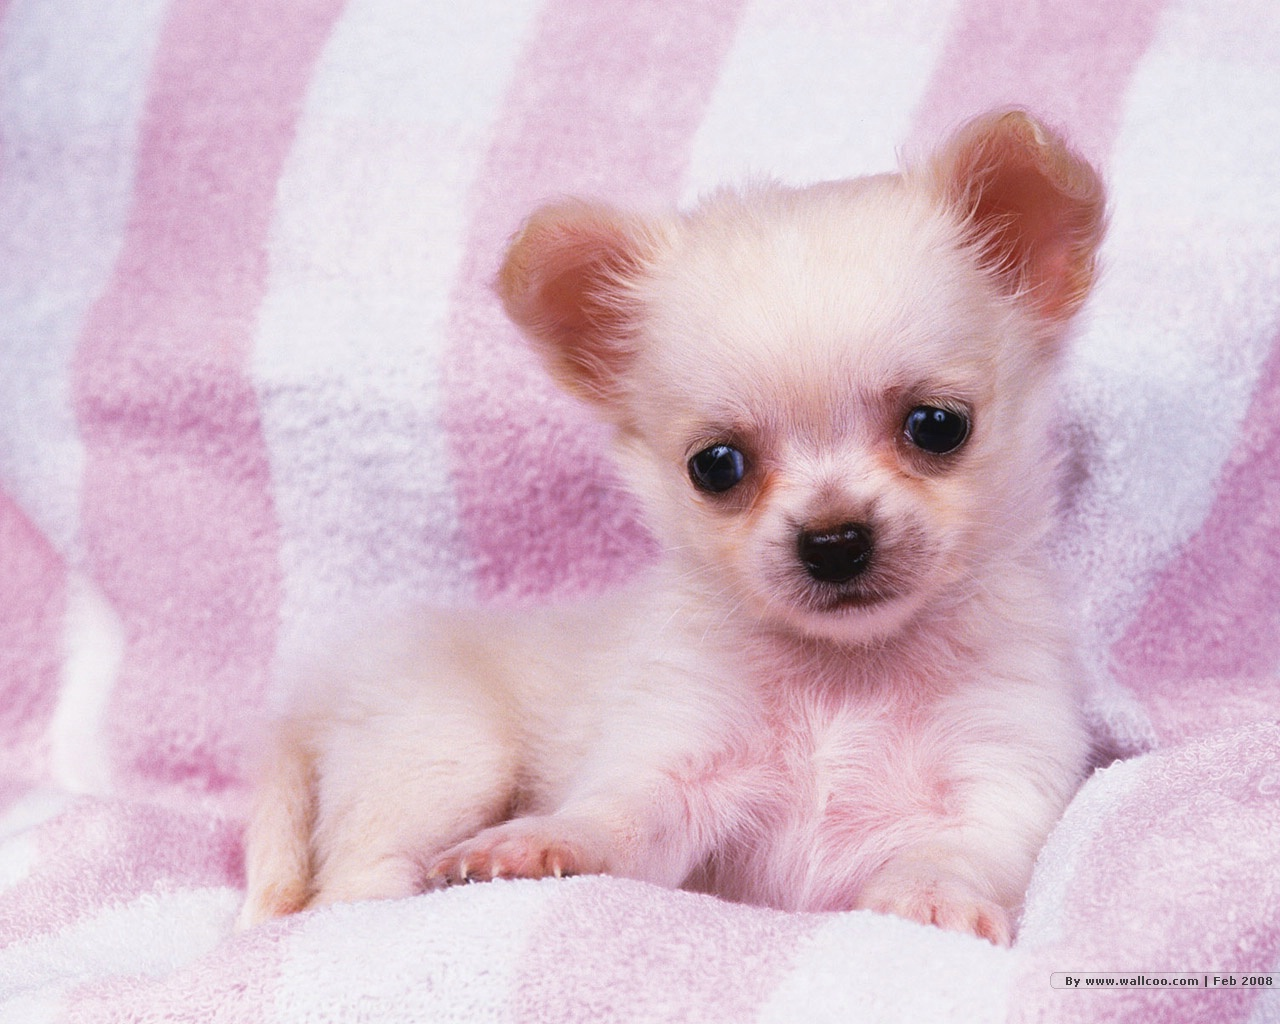 Cute Puppies Wallpaper Hd Posted By Michelle Anderson